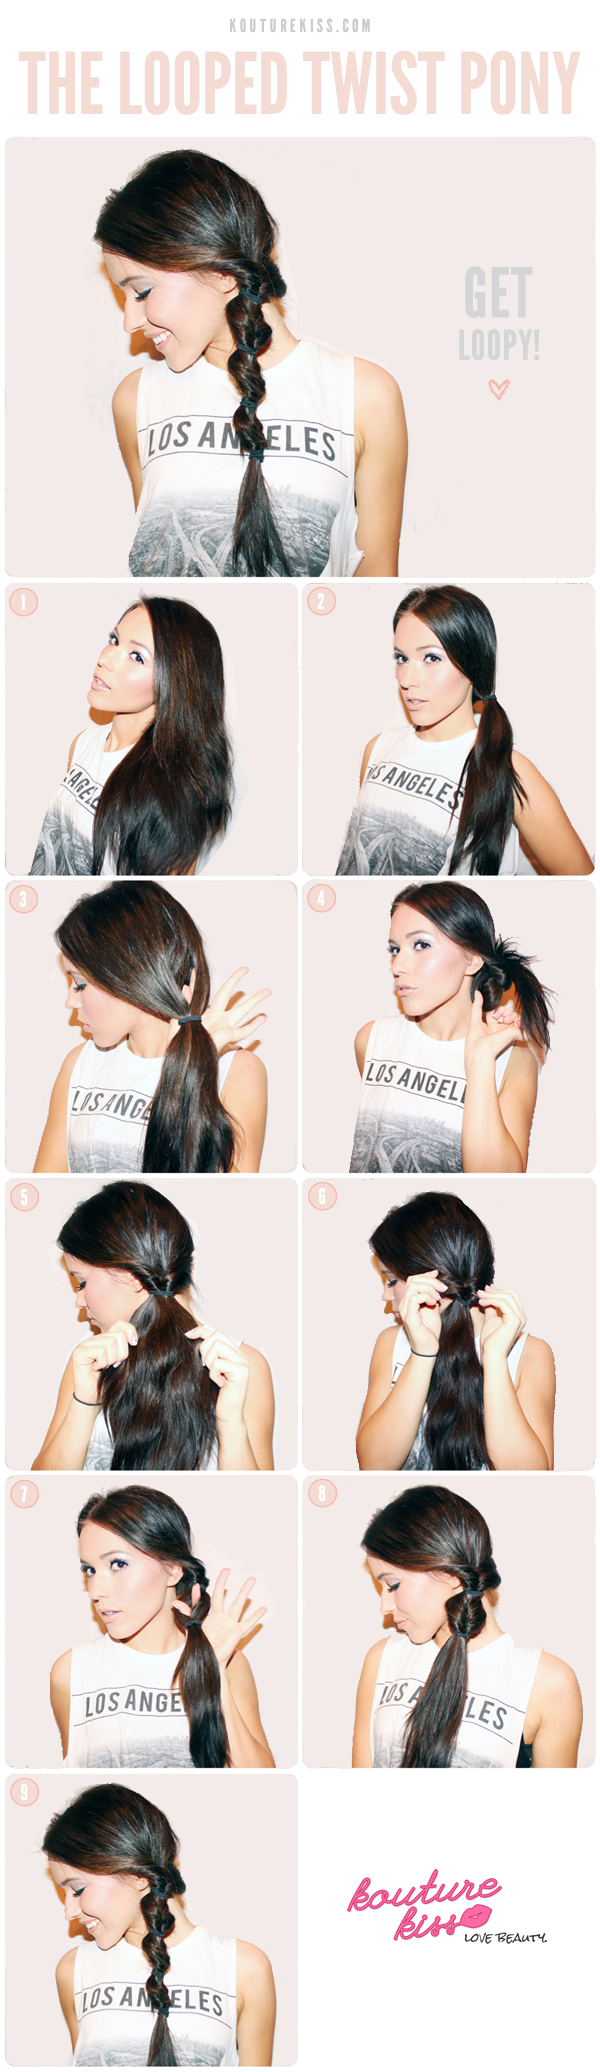 Diy the looped twist tutorialte but i donut think my hair is